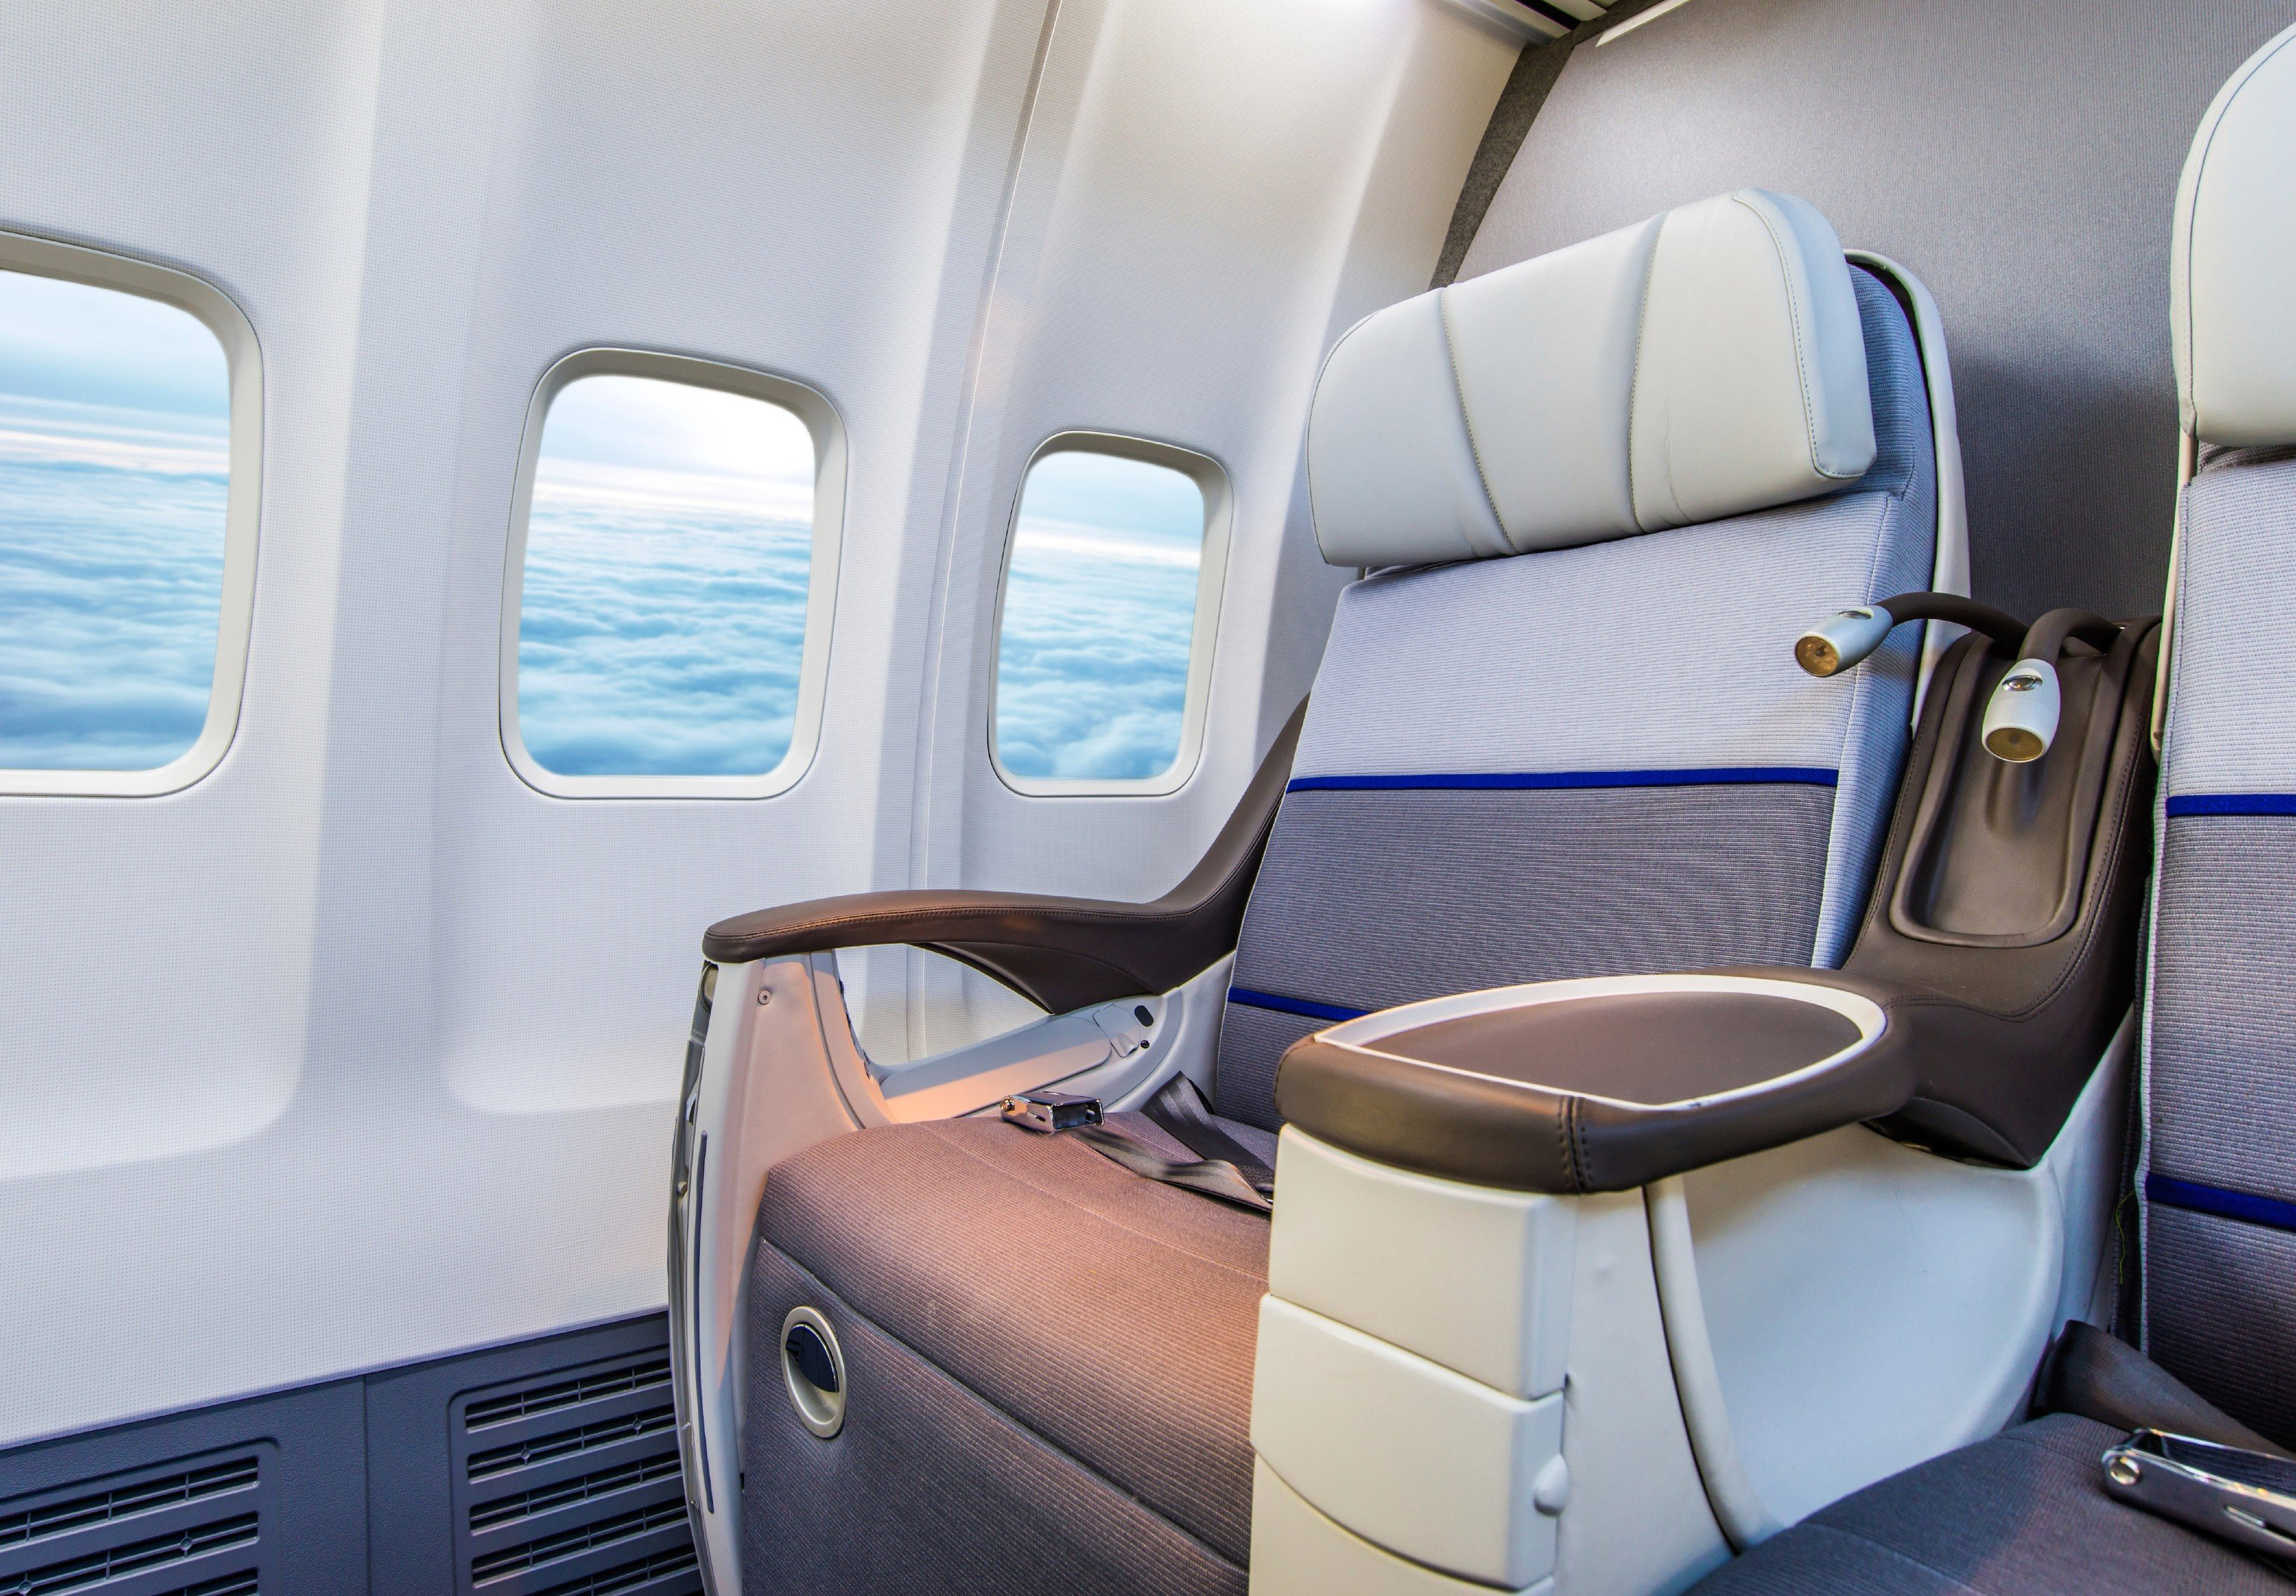 Flights Travel Tips car vehicle airline Cabin indoor ecosystem aircraft cabin luxury vehicle passenger yacht automobile make seat car seat